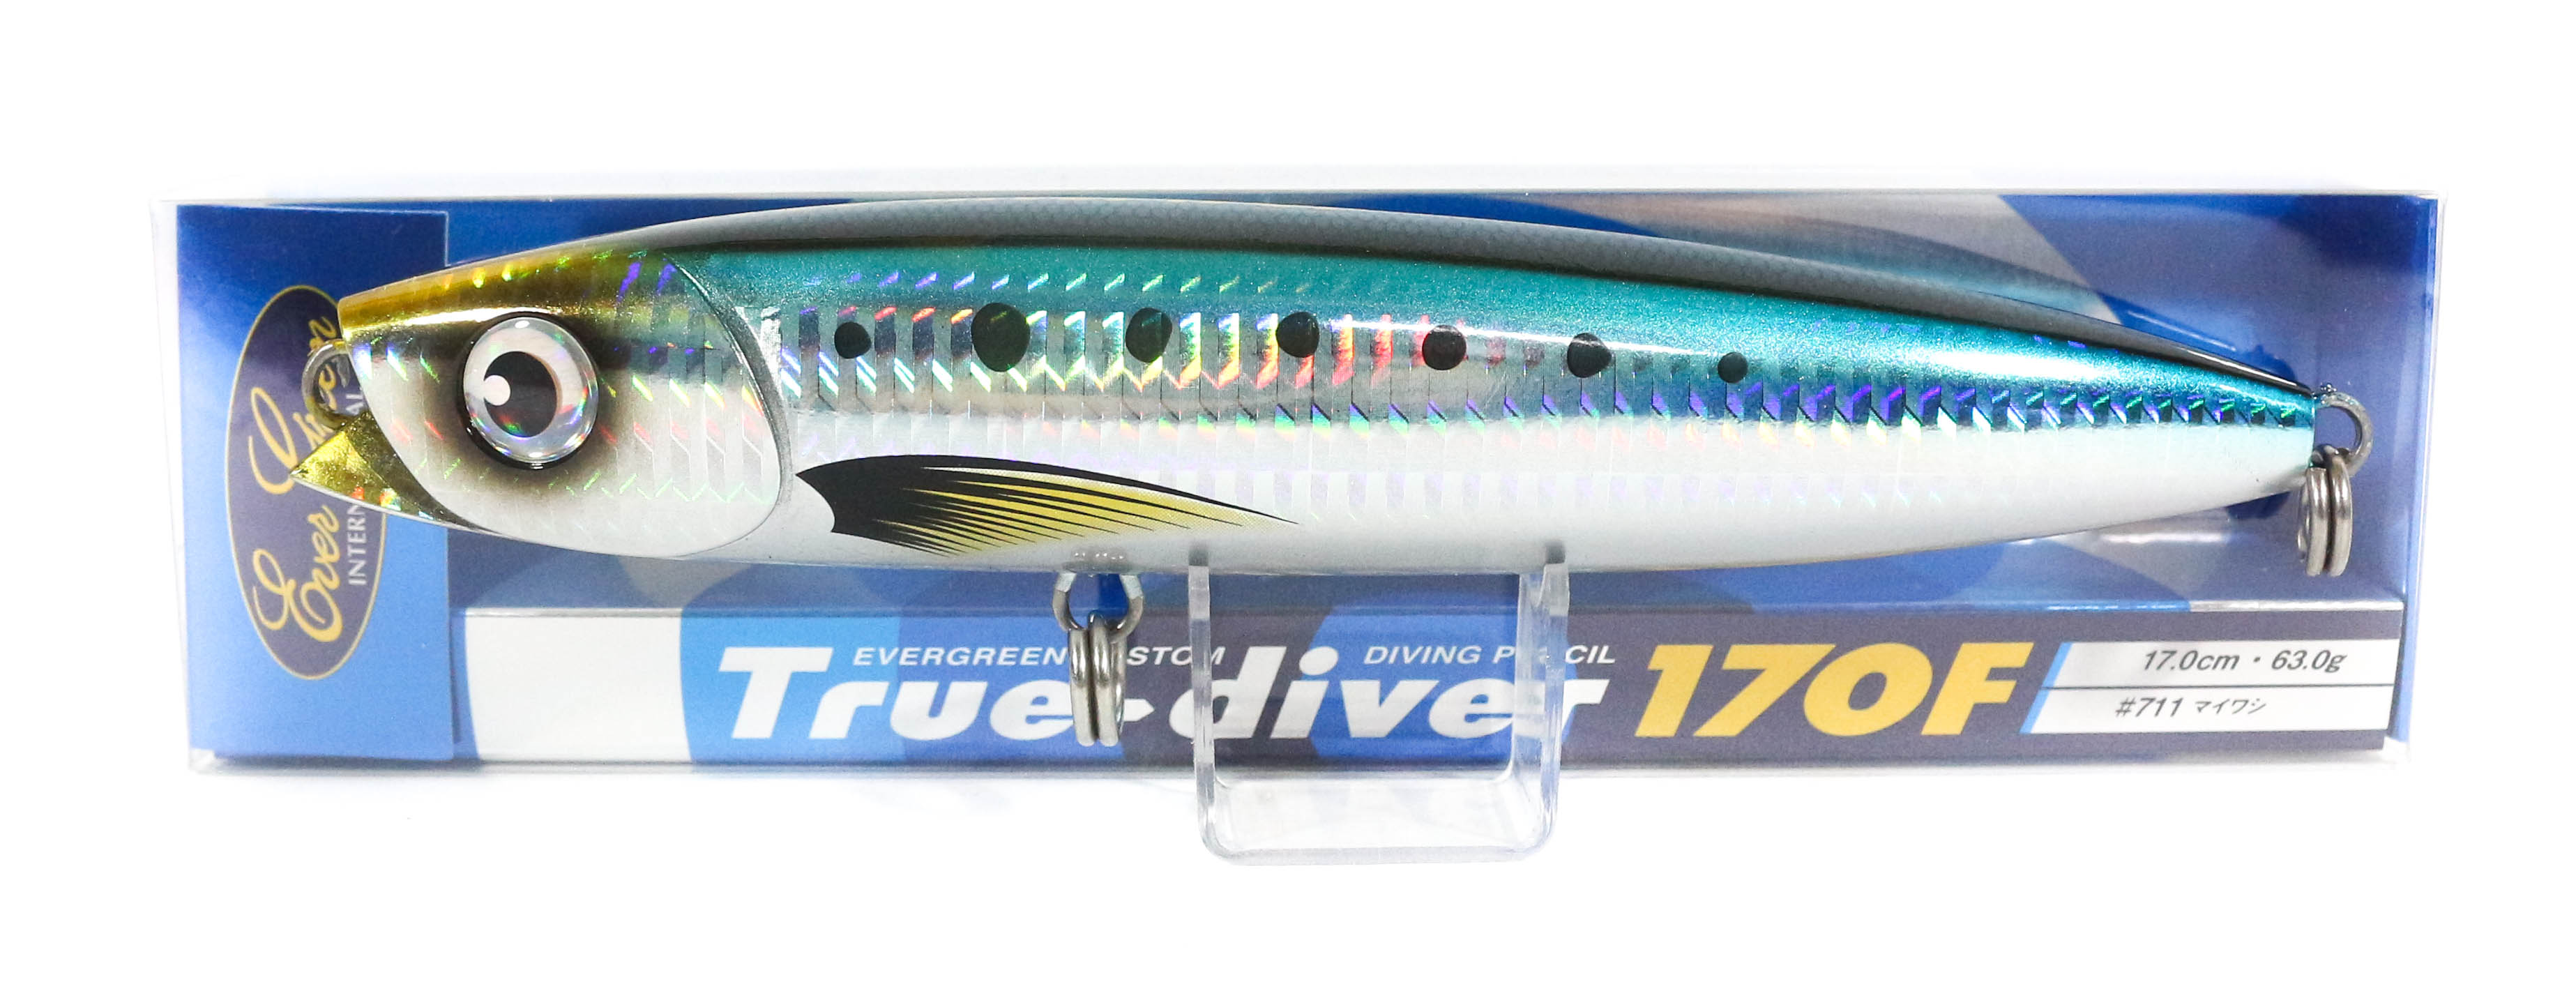 Sale Evergreen True Diver 170F Pencil 63 gram Floating Lure 711 (8184)